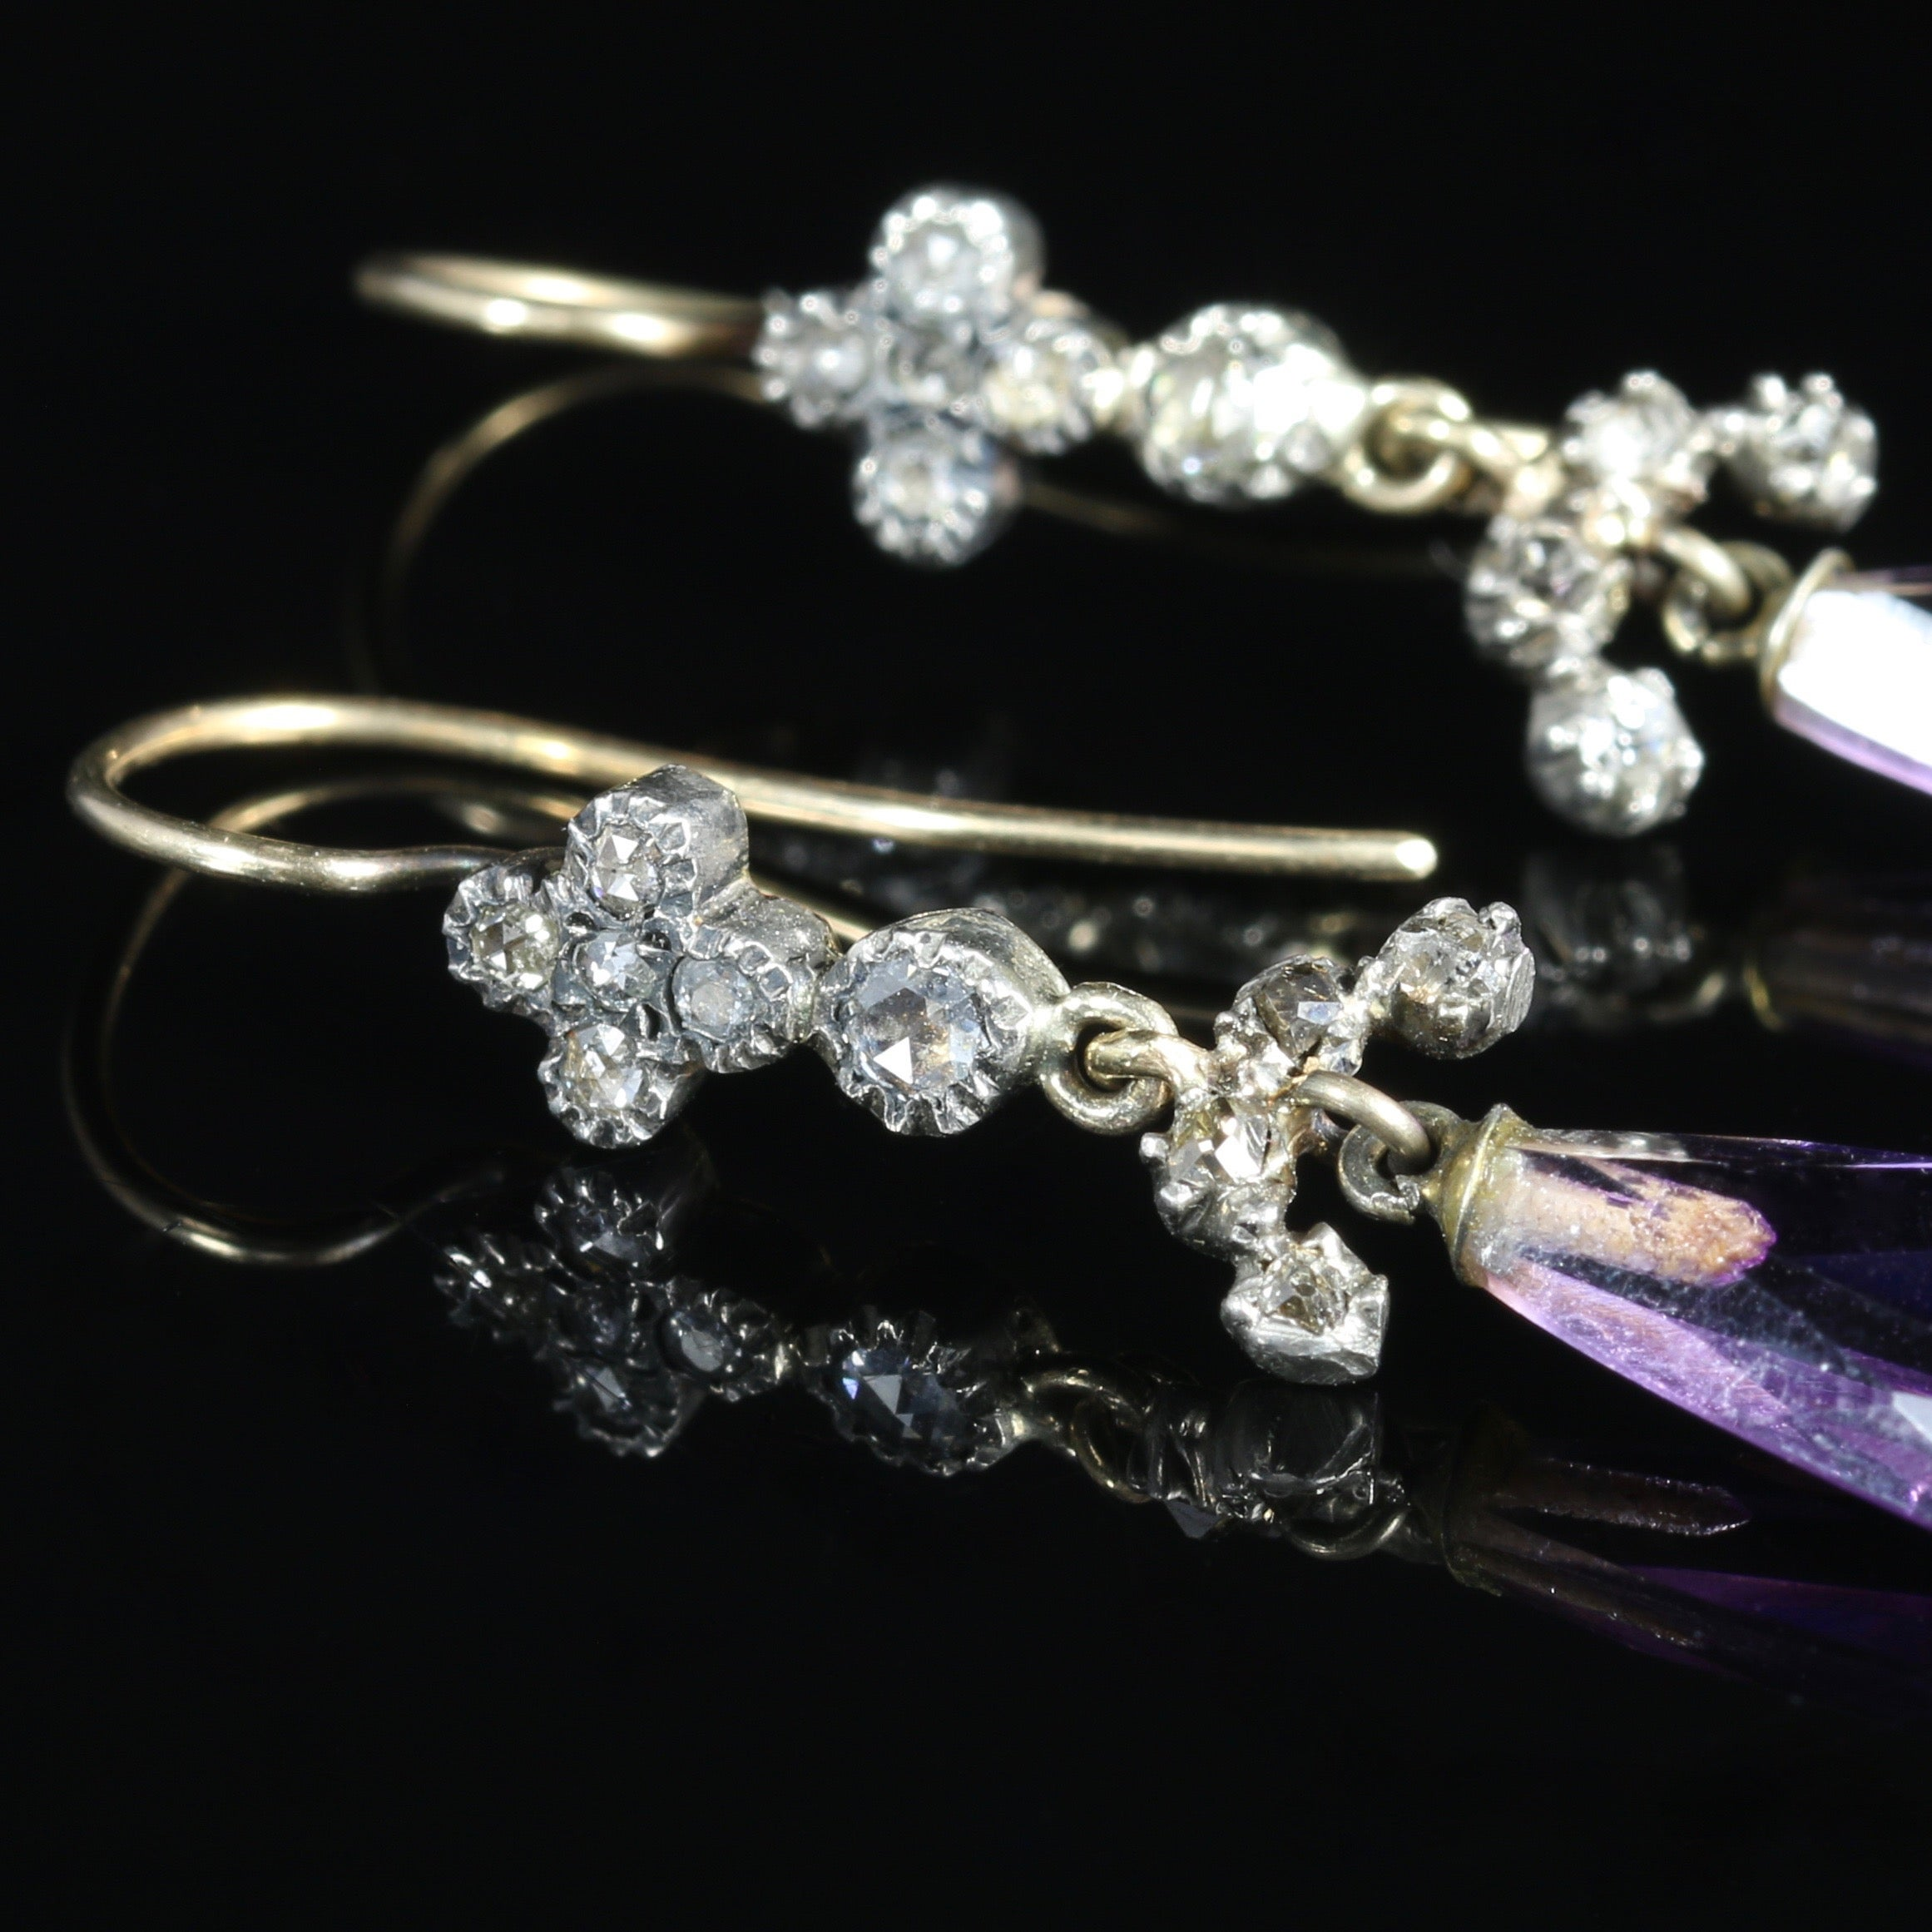 product victorian in deakin carat from karen late earrings antique antiques diamond about gold